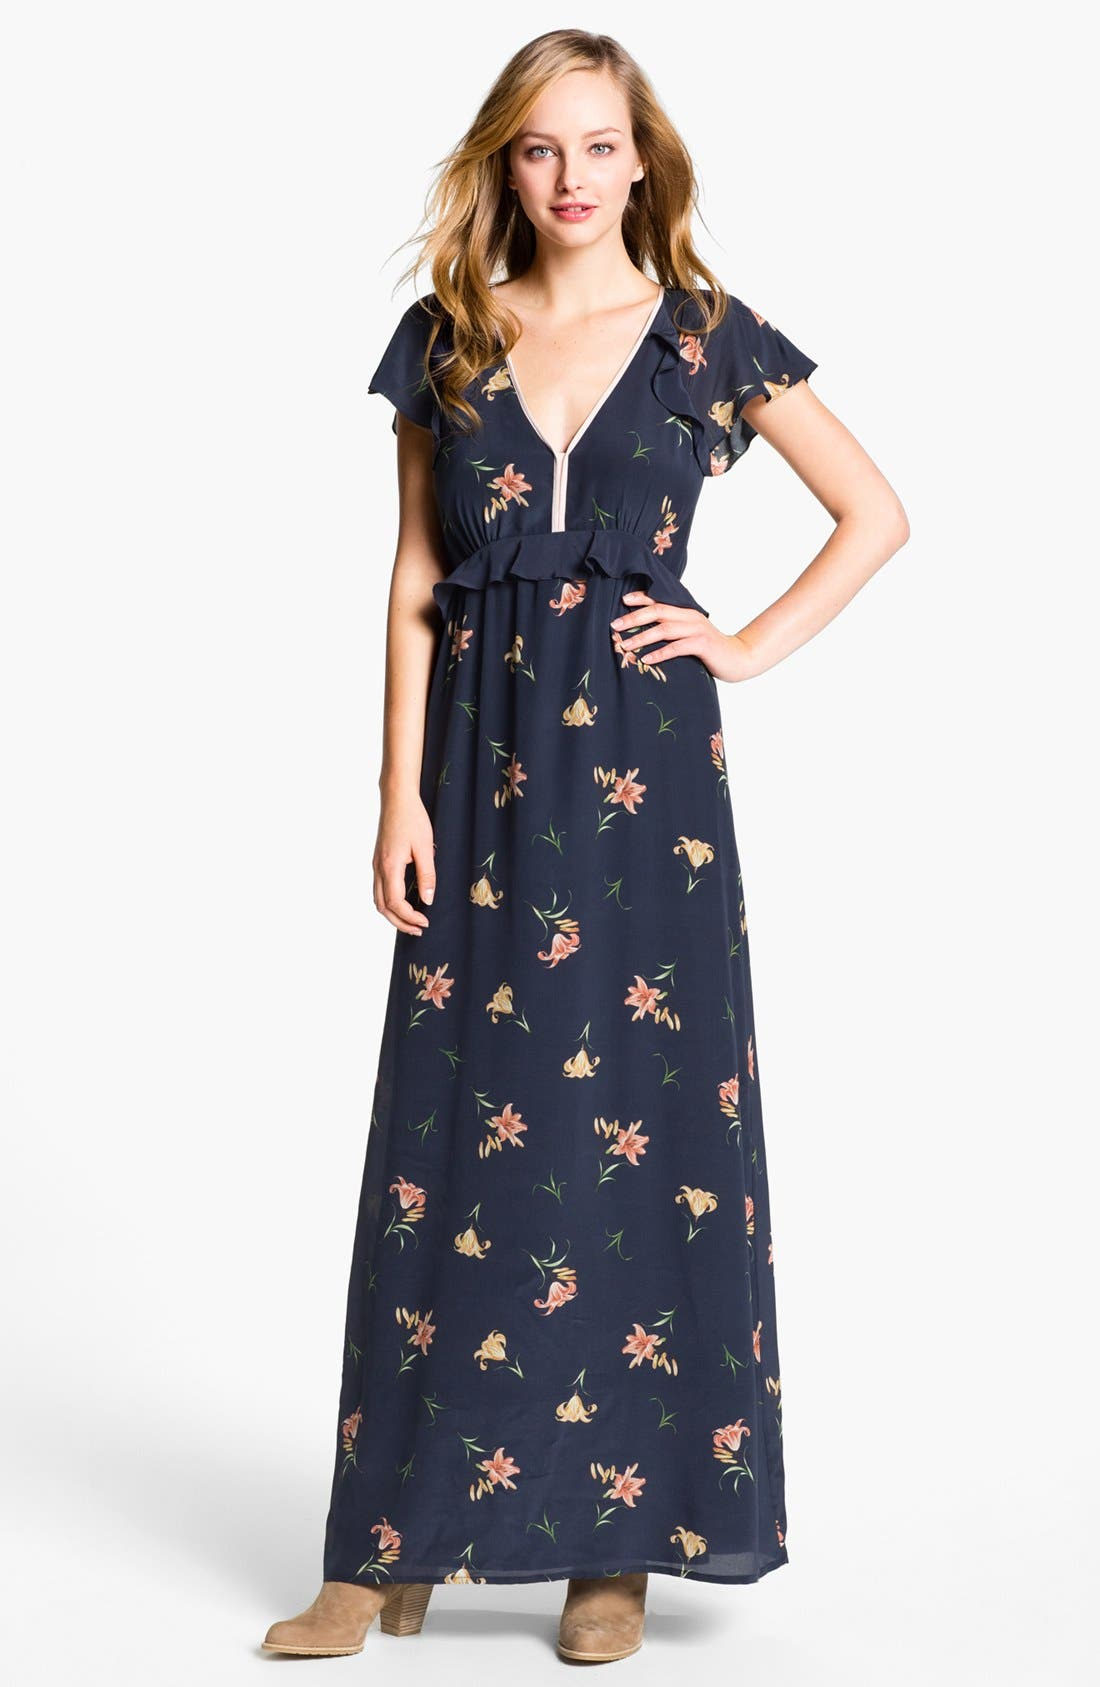 Alternate Image 1 Selected - French Connection 'Lilly Anna' Print Ruffled Maxi Dress